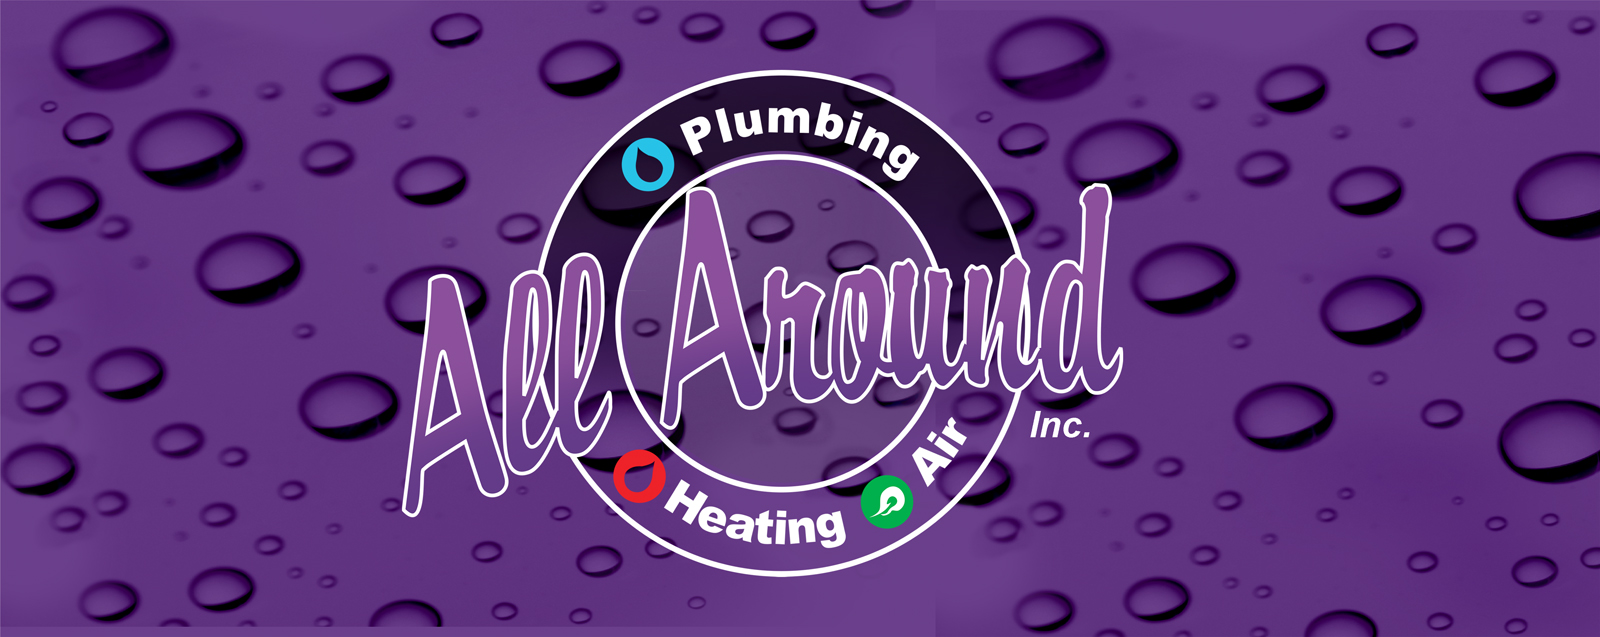 Photo of Triple T Plumbing Heating & Cooling - Spanish Fork, UT, United  States